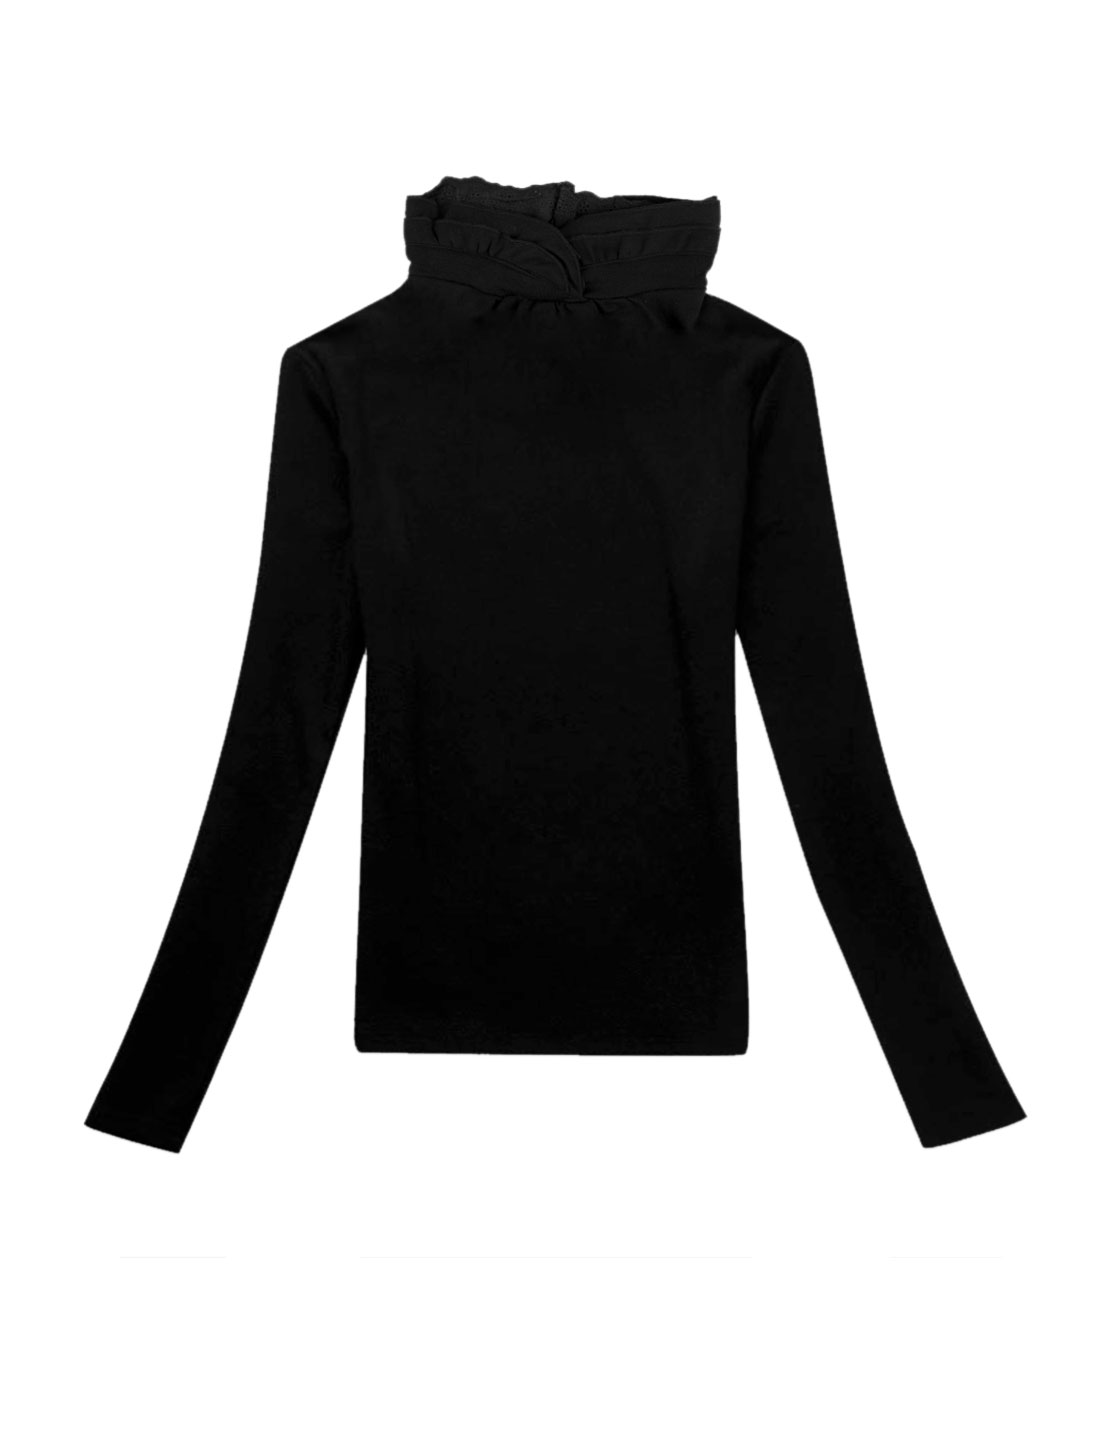 Women Turtleneck Design Long Sleeve Solid Color Stylish Blouse Black S